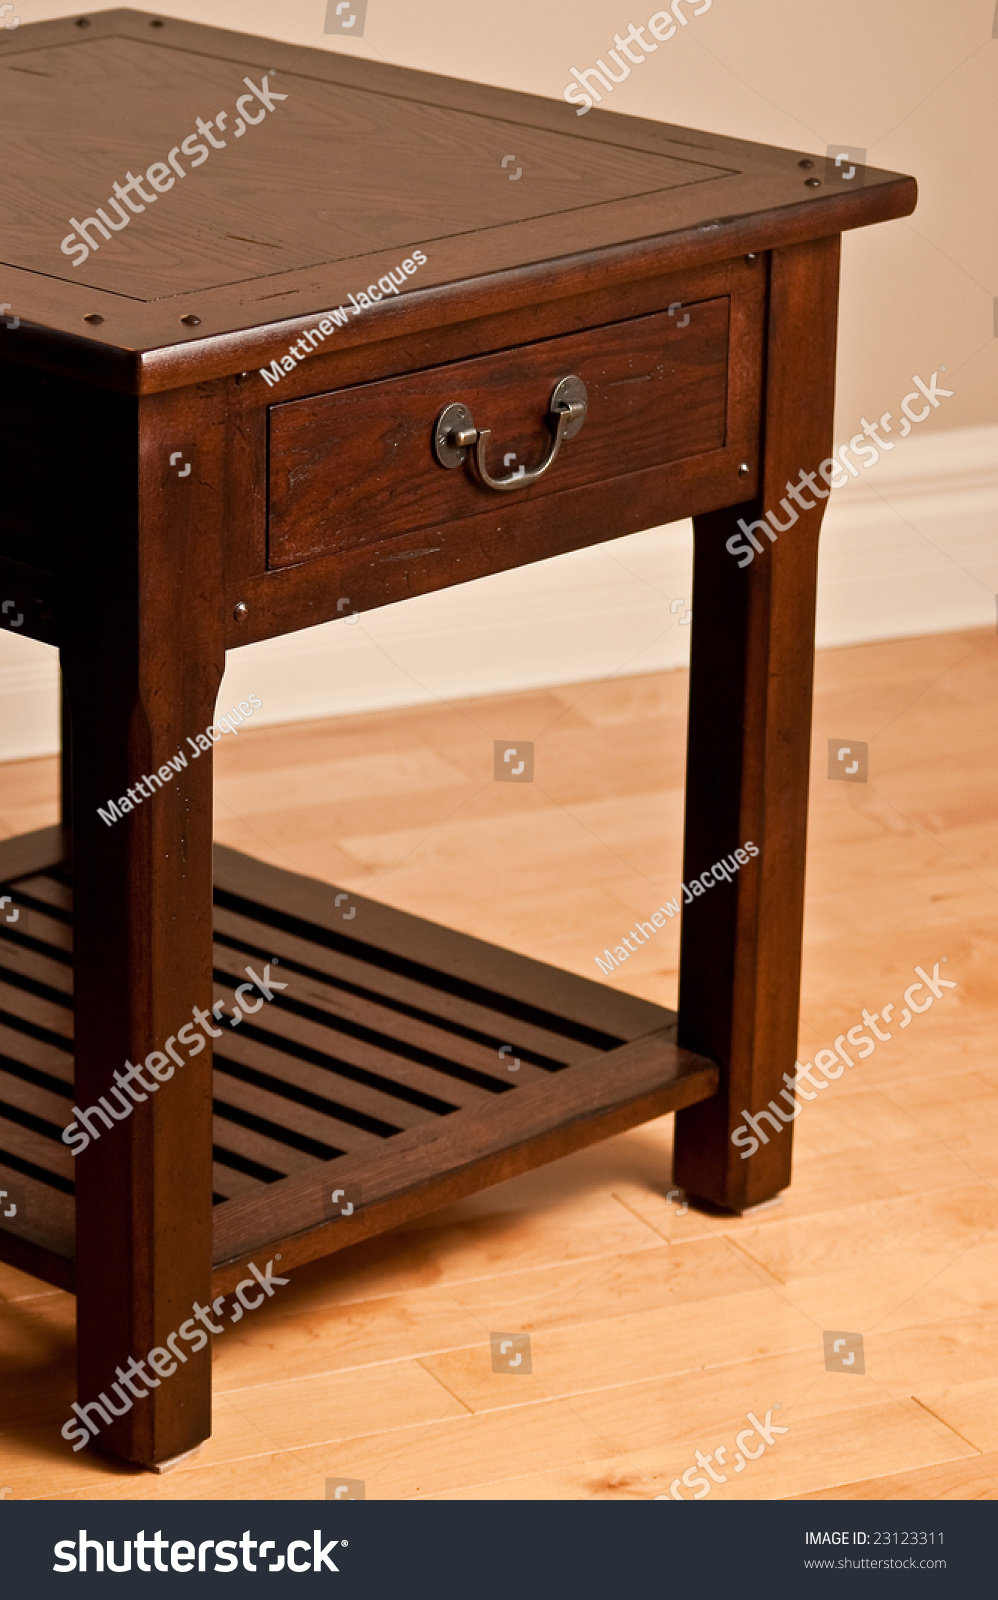 solid wood end table against earth tone wall and hardwood floor  - solid wood end table against earth tone wall and hardwood floor previewsave to a lightbox